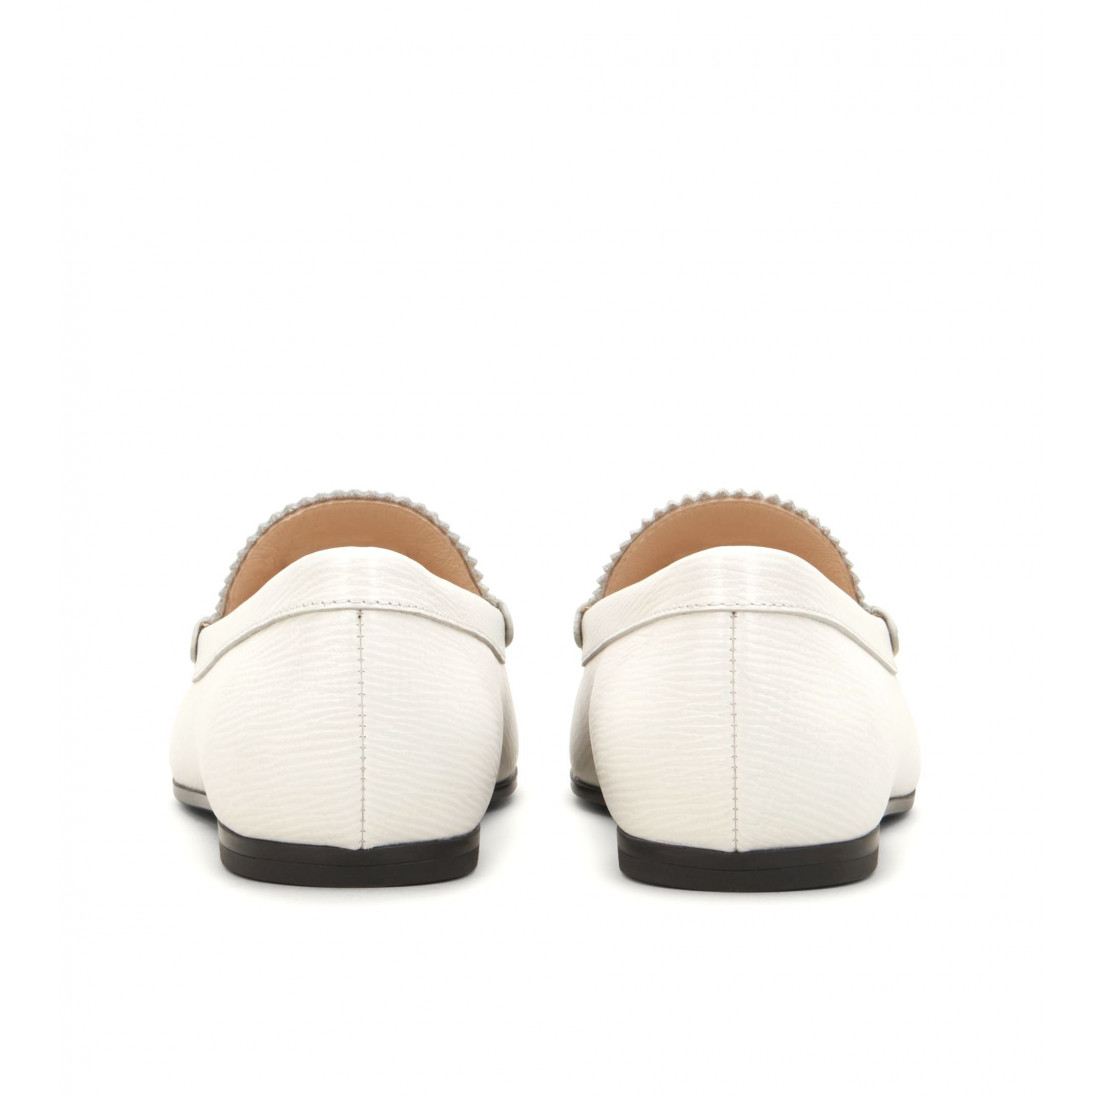 loafers woman tods xxw35b0bn30lubb015 4838